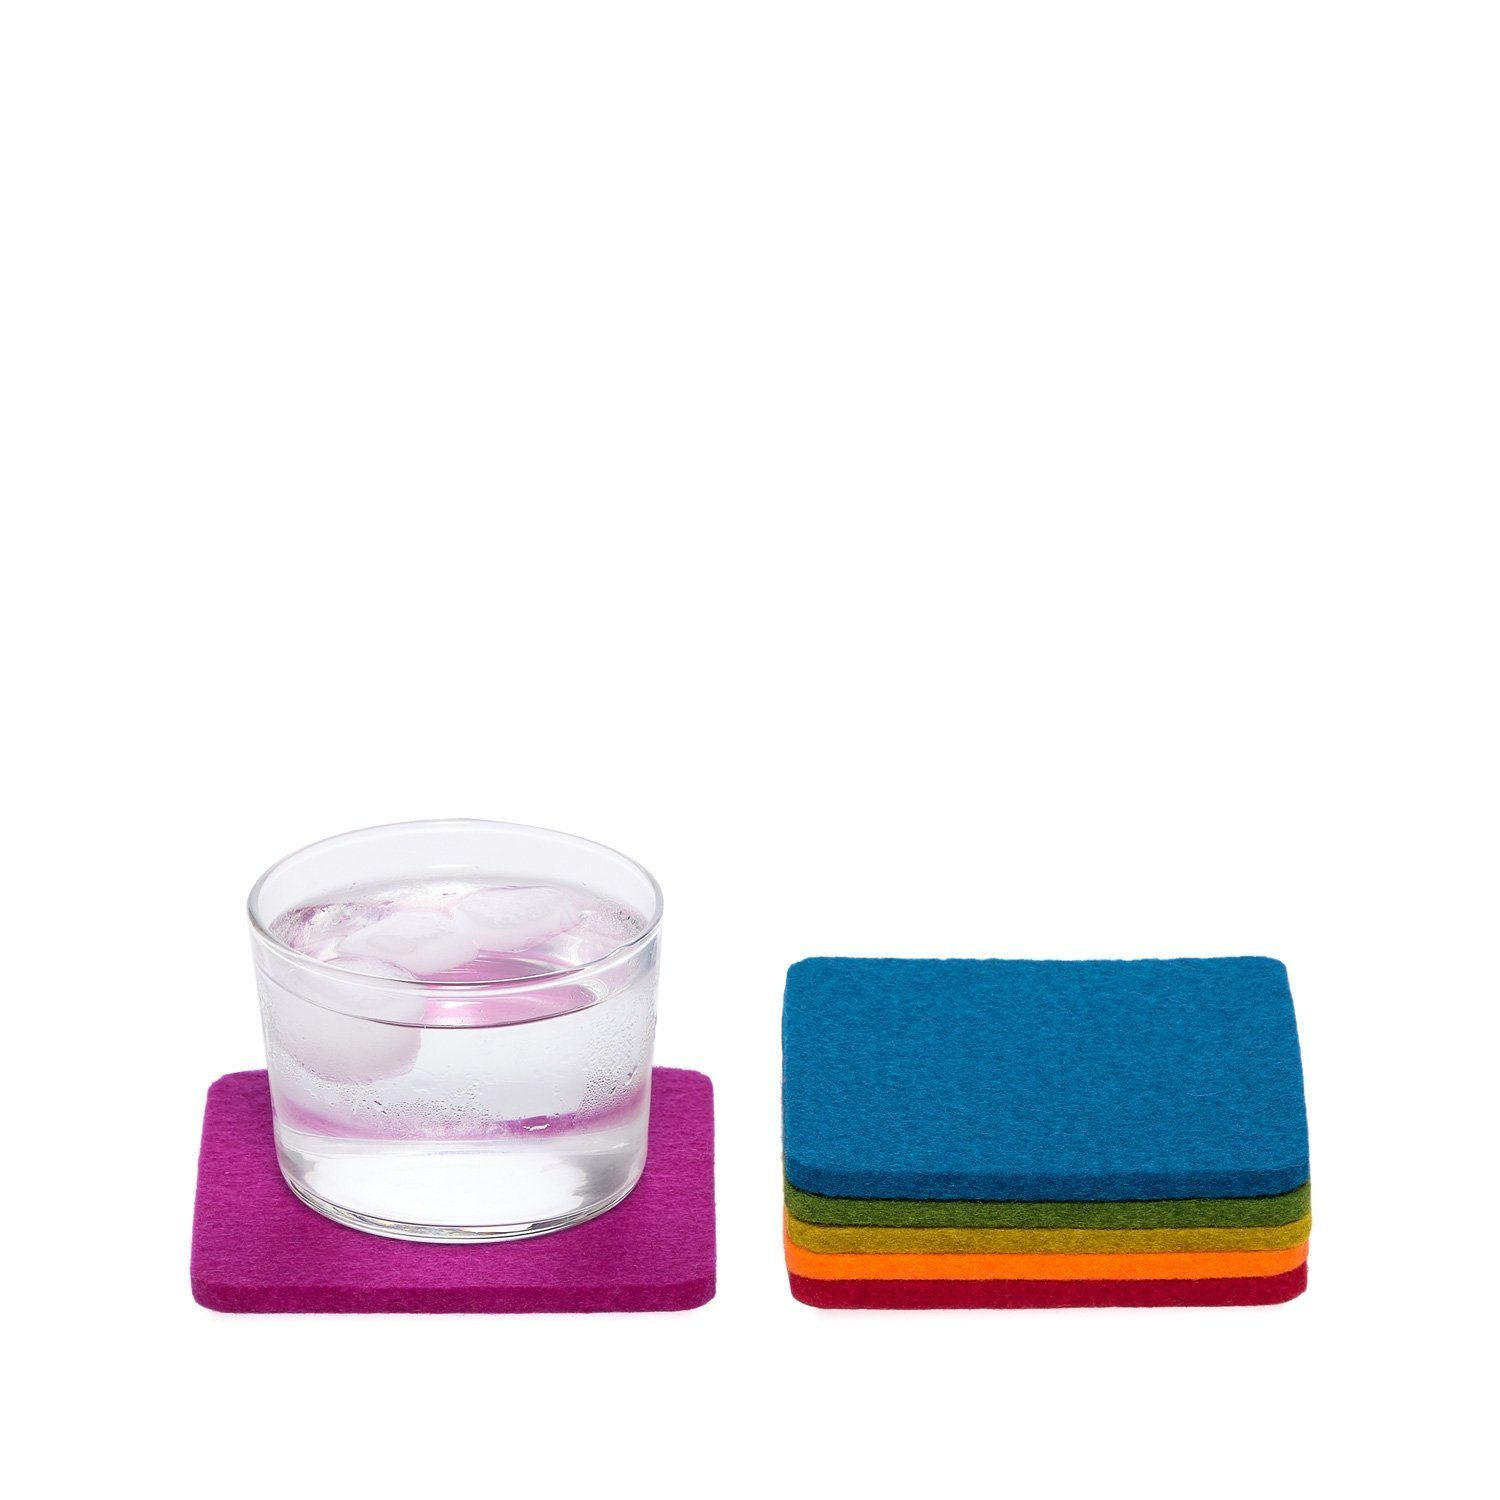 Graf Lantz, Bierfilzl Square Multi Color Felt Coasters, 6-pack, Rainbow- Placewares